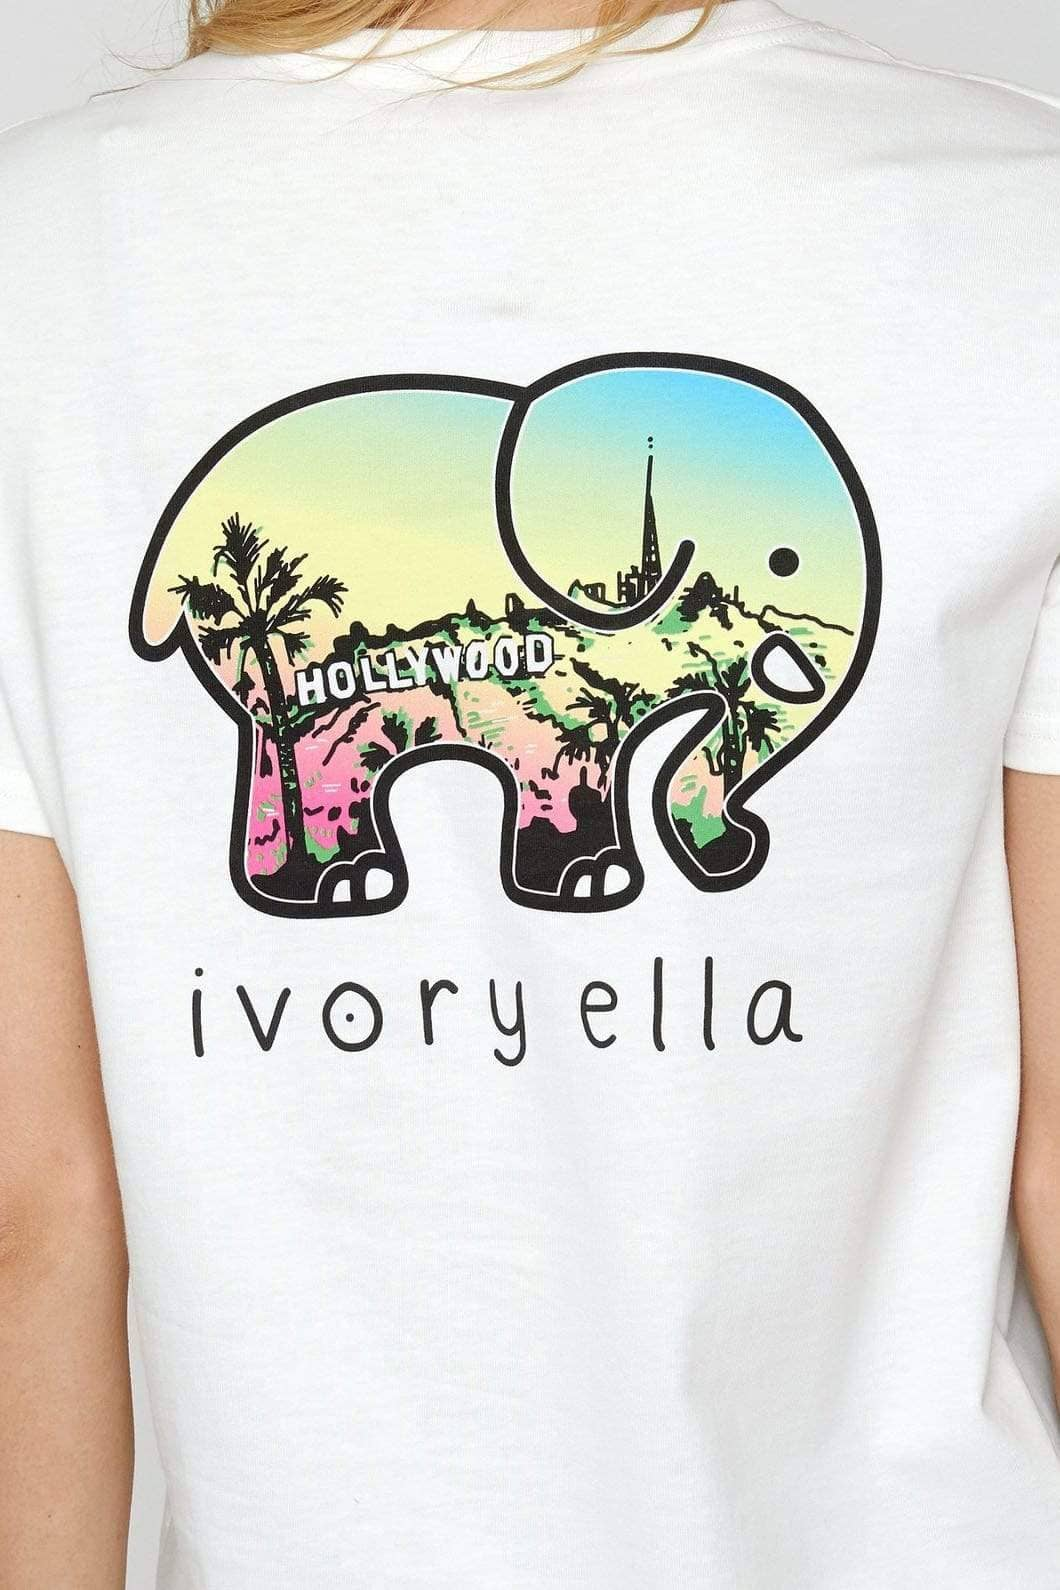 Organic Ella Fit Soft White Hollywood Tee - Ivory Ella - Women's Short Sleeve Tees